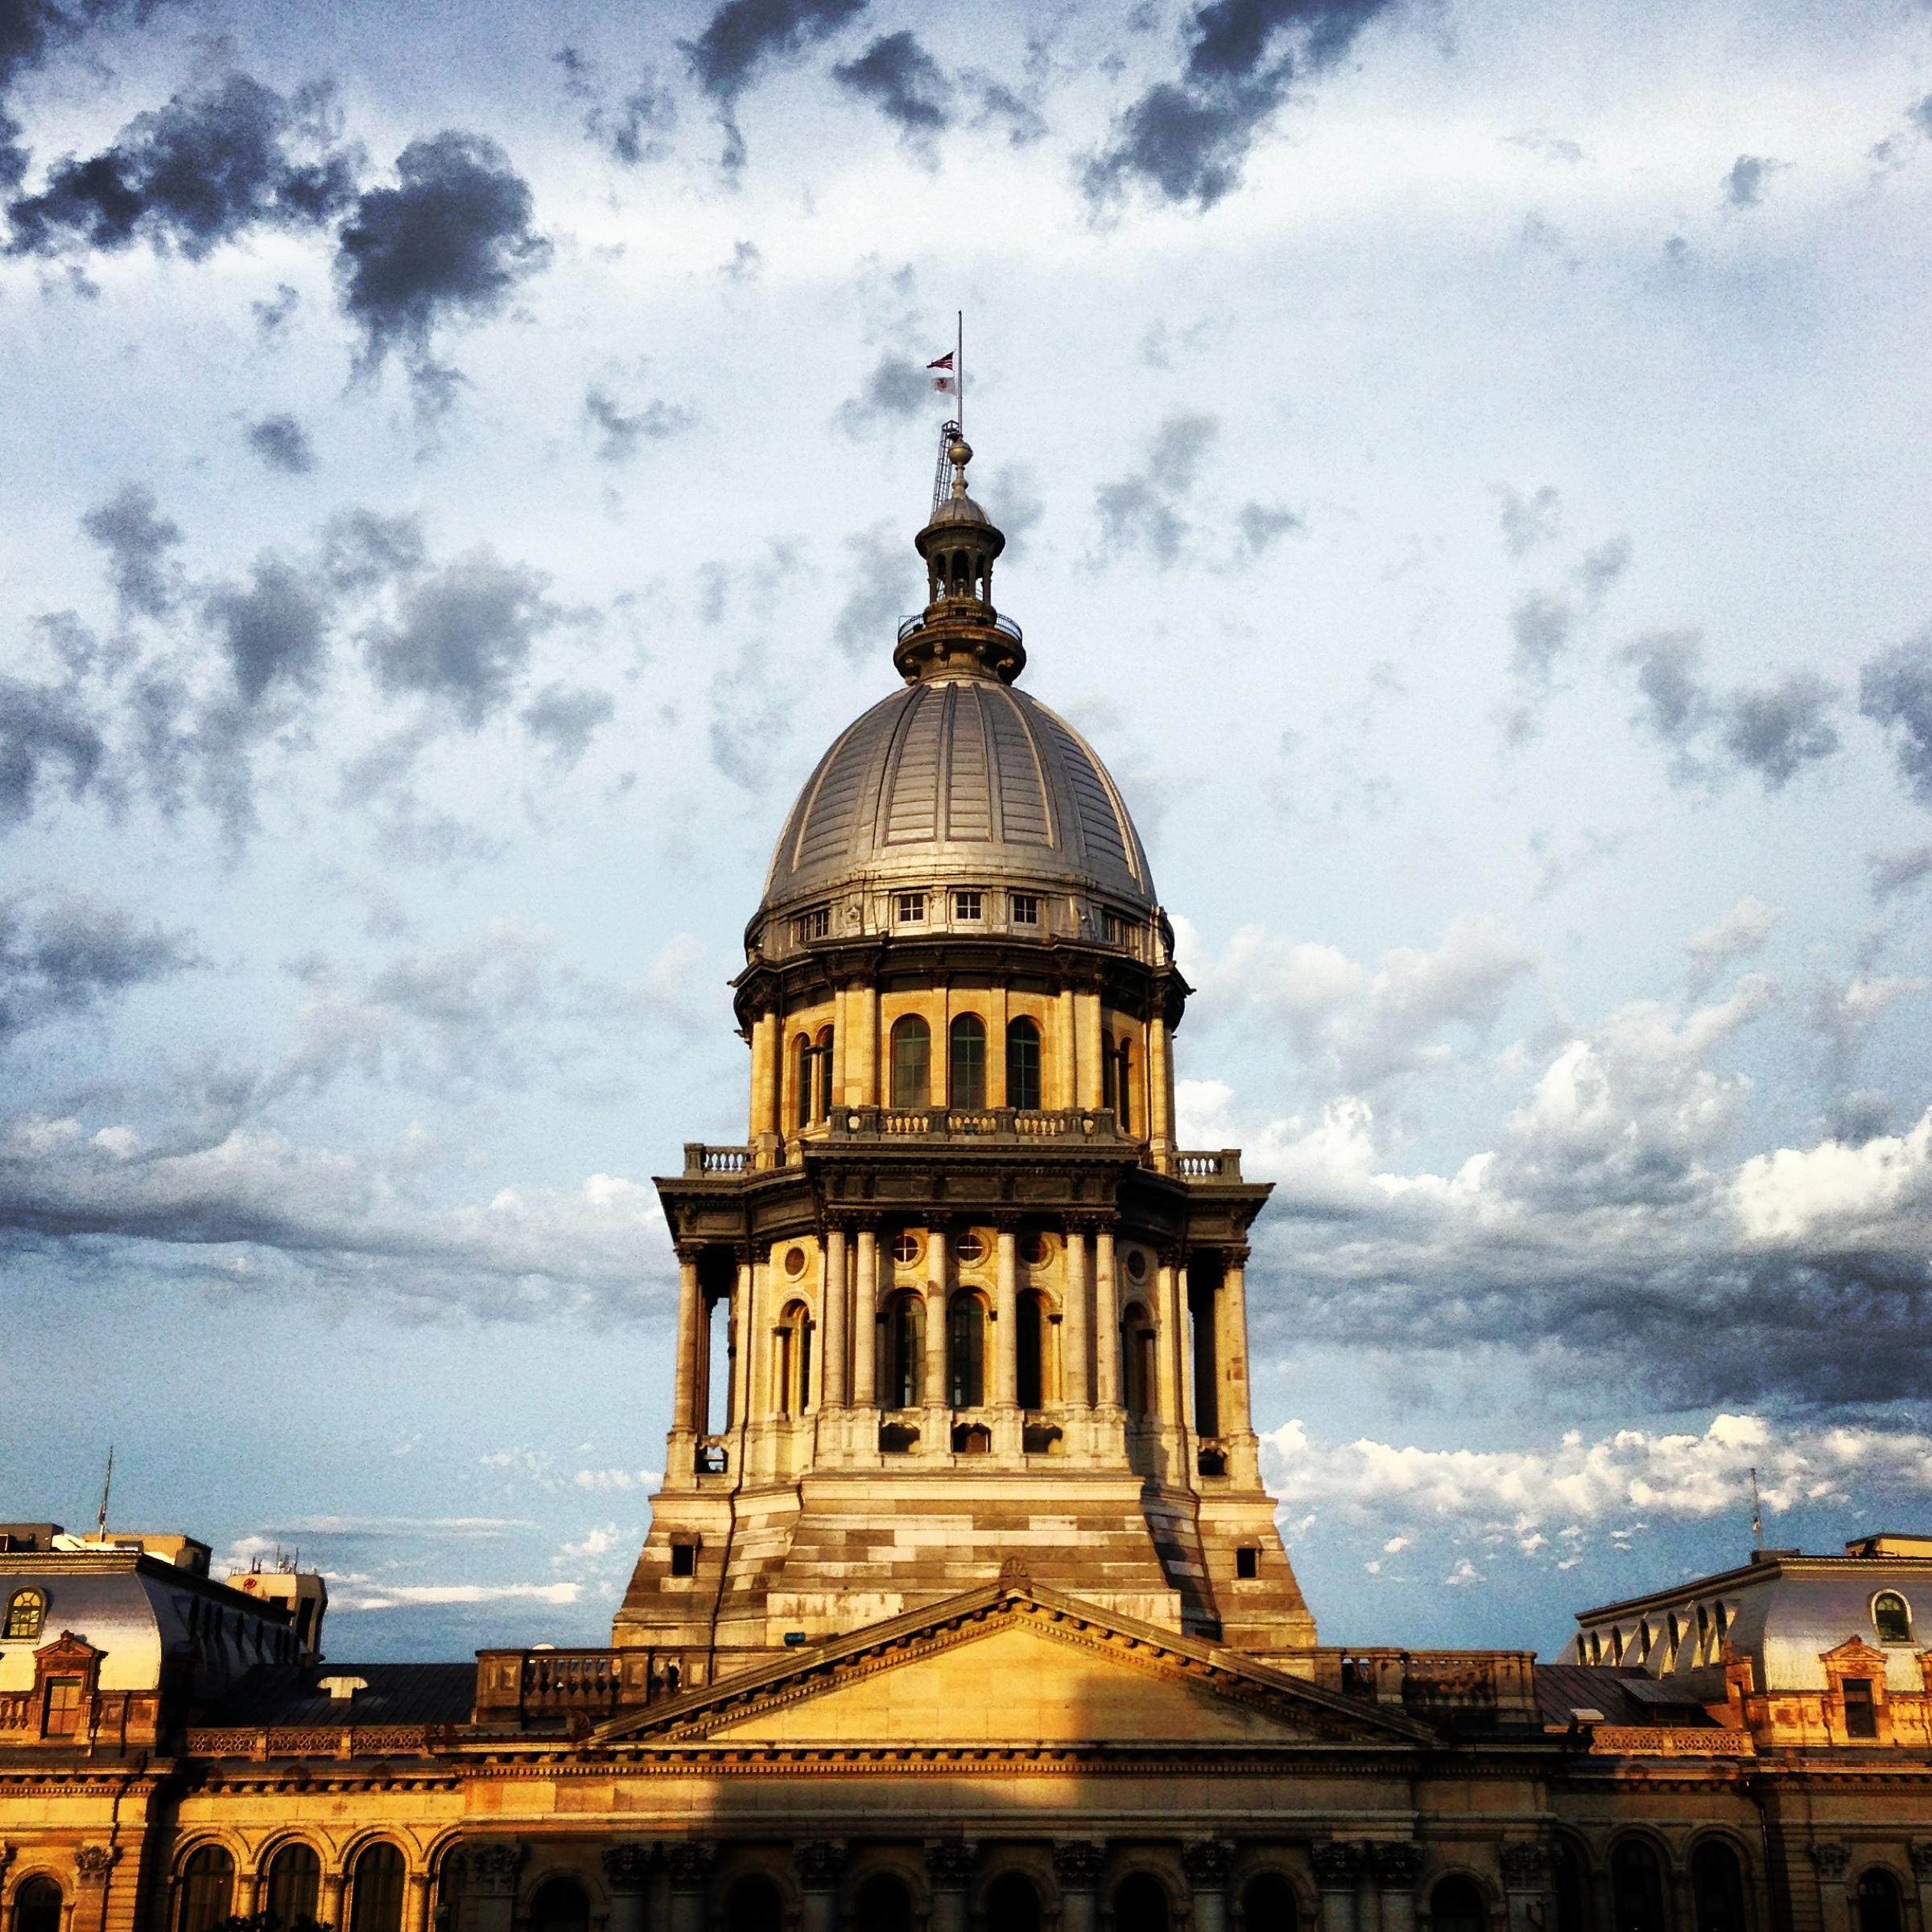 Illinois Senate Approves Budget and Tax Plan With No GOP Support